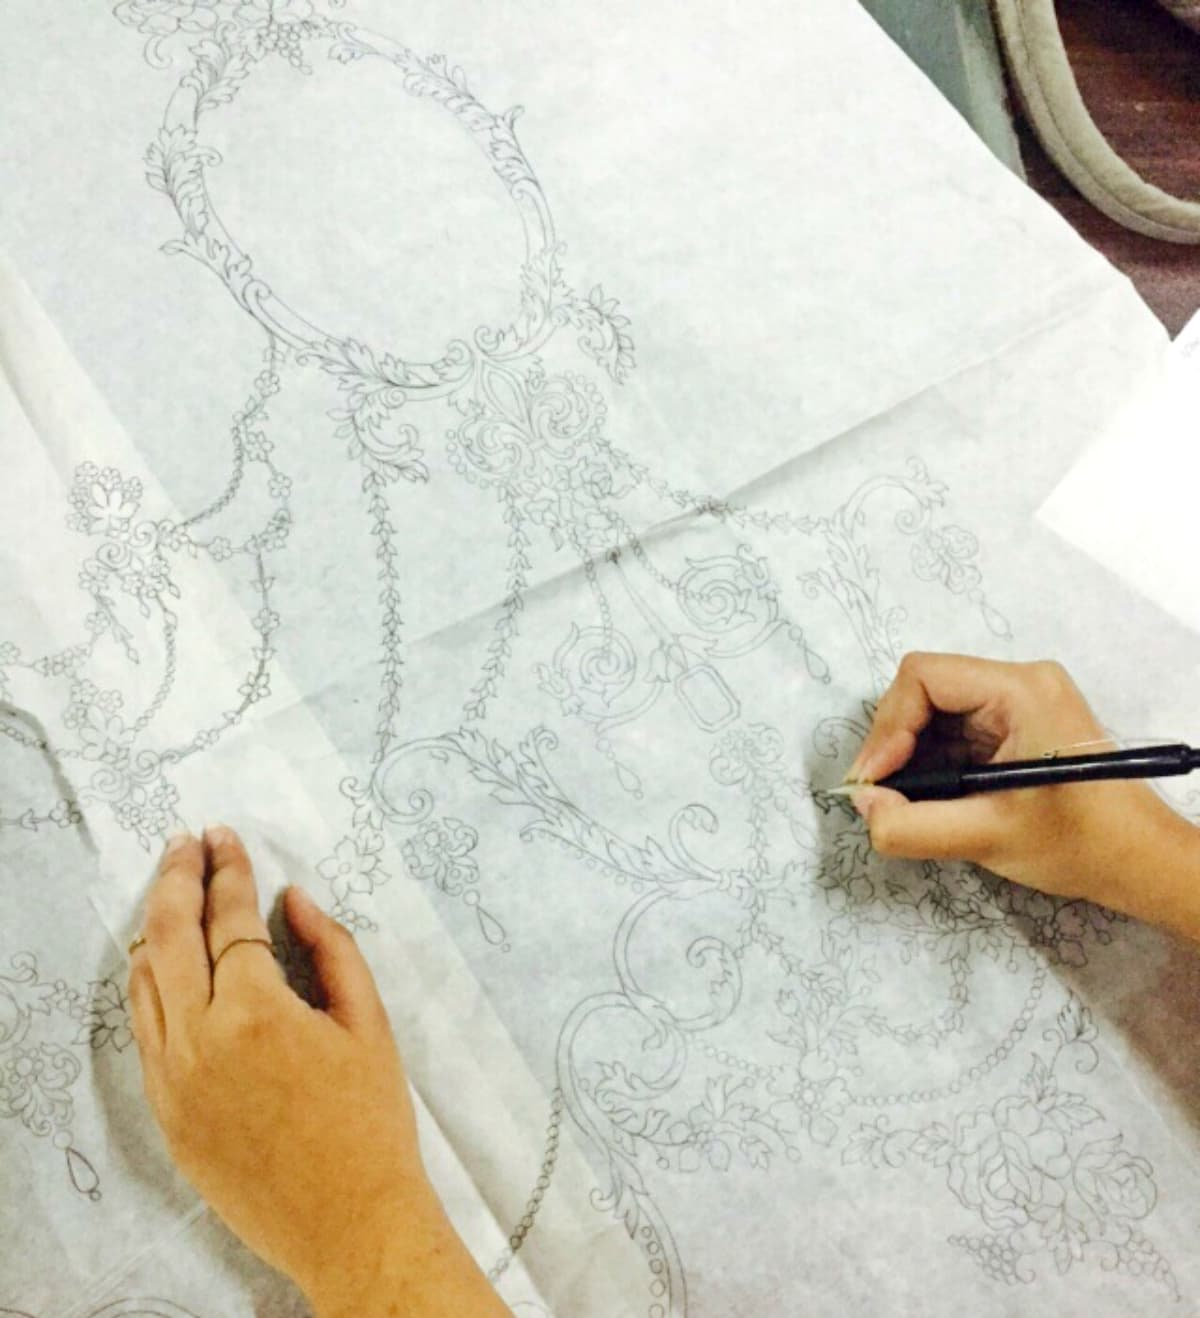 A designer at Maria B works on the embroidery sketch - Photo courtesy Maria B